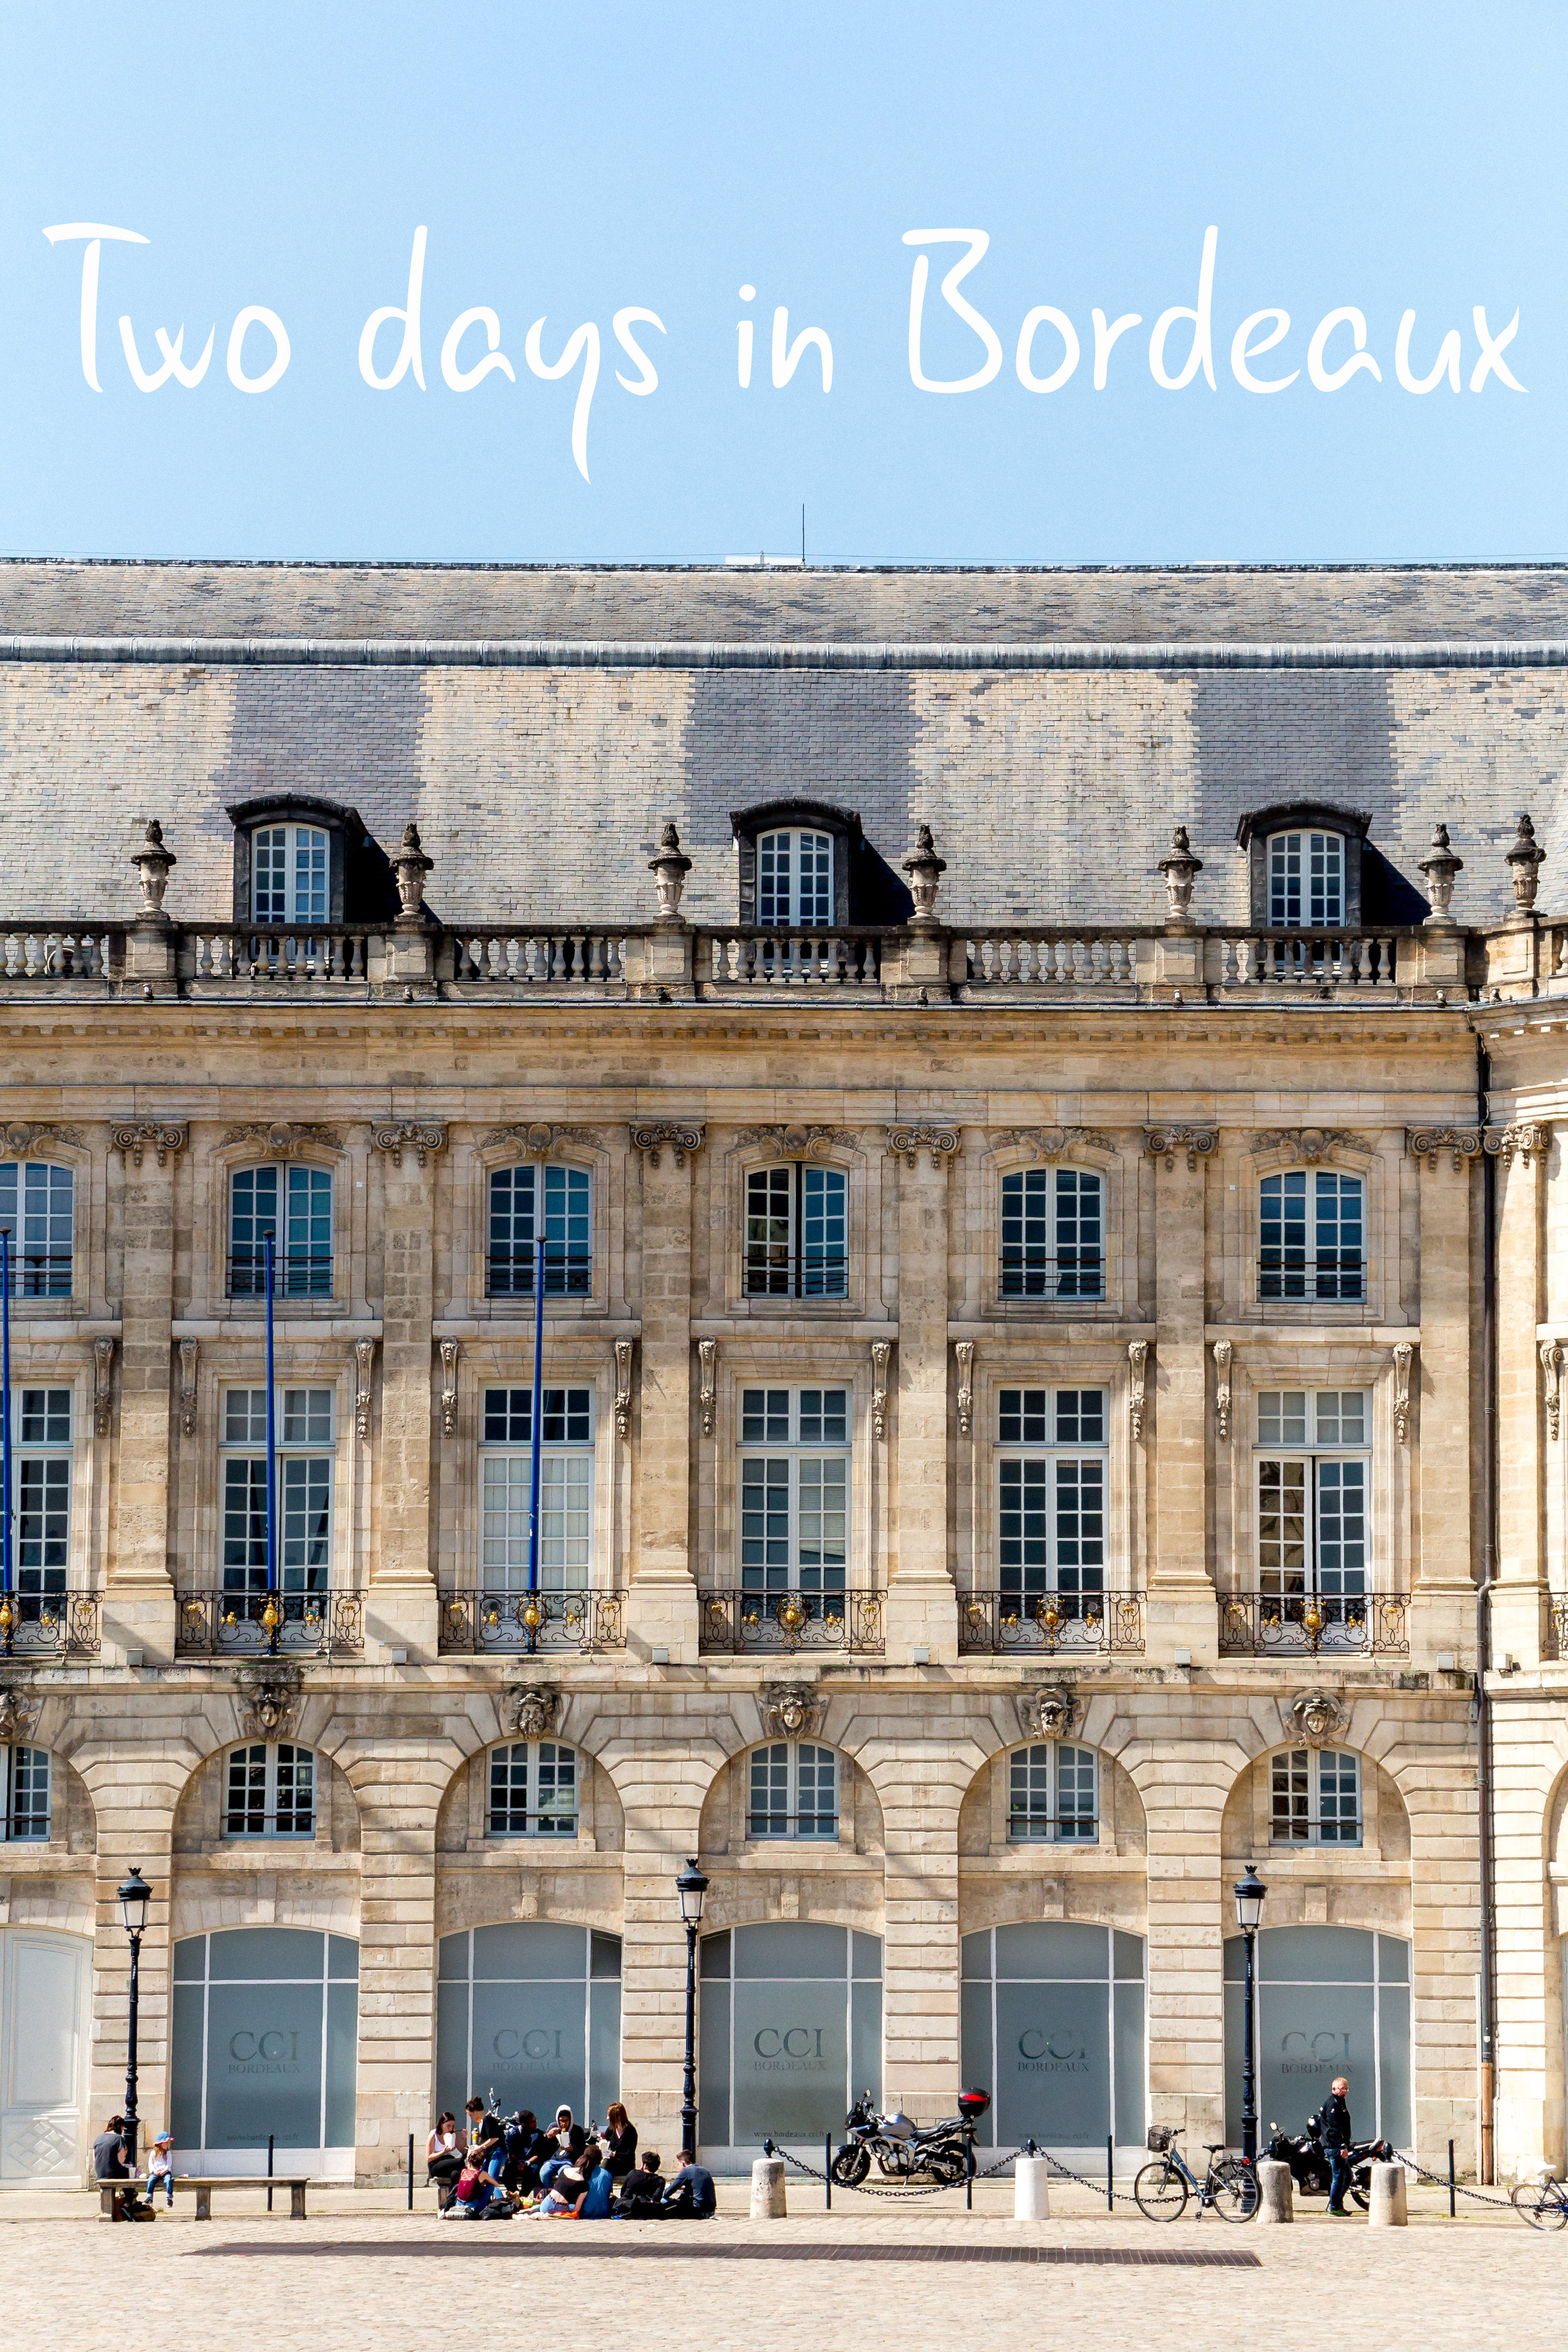 Two days in Bordeaux, France